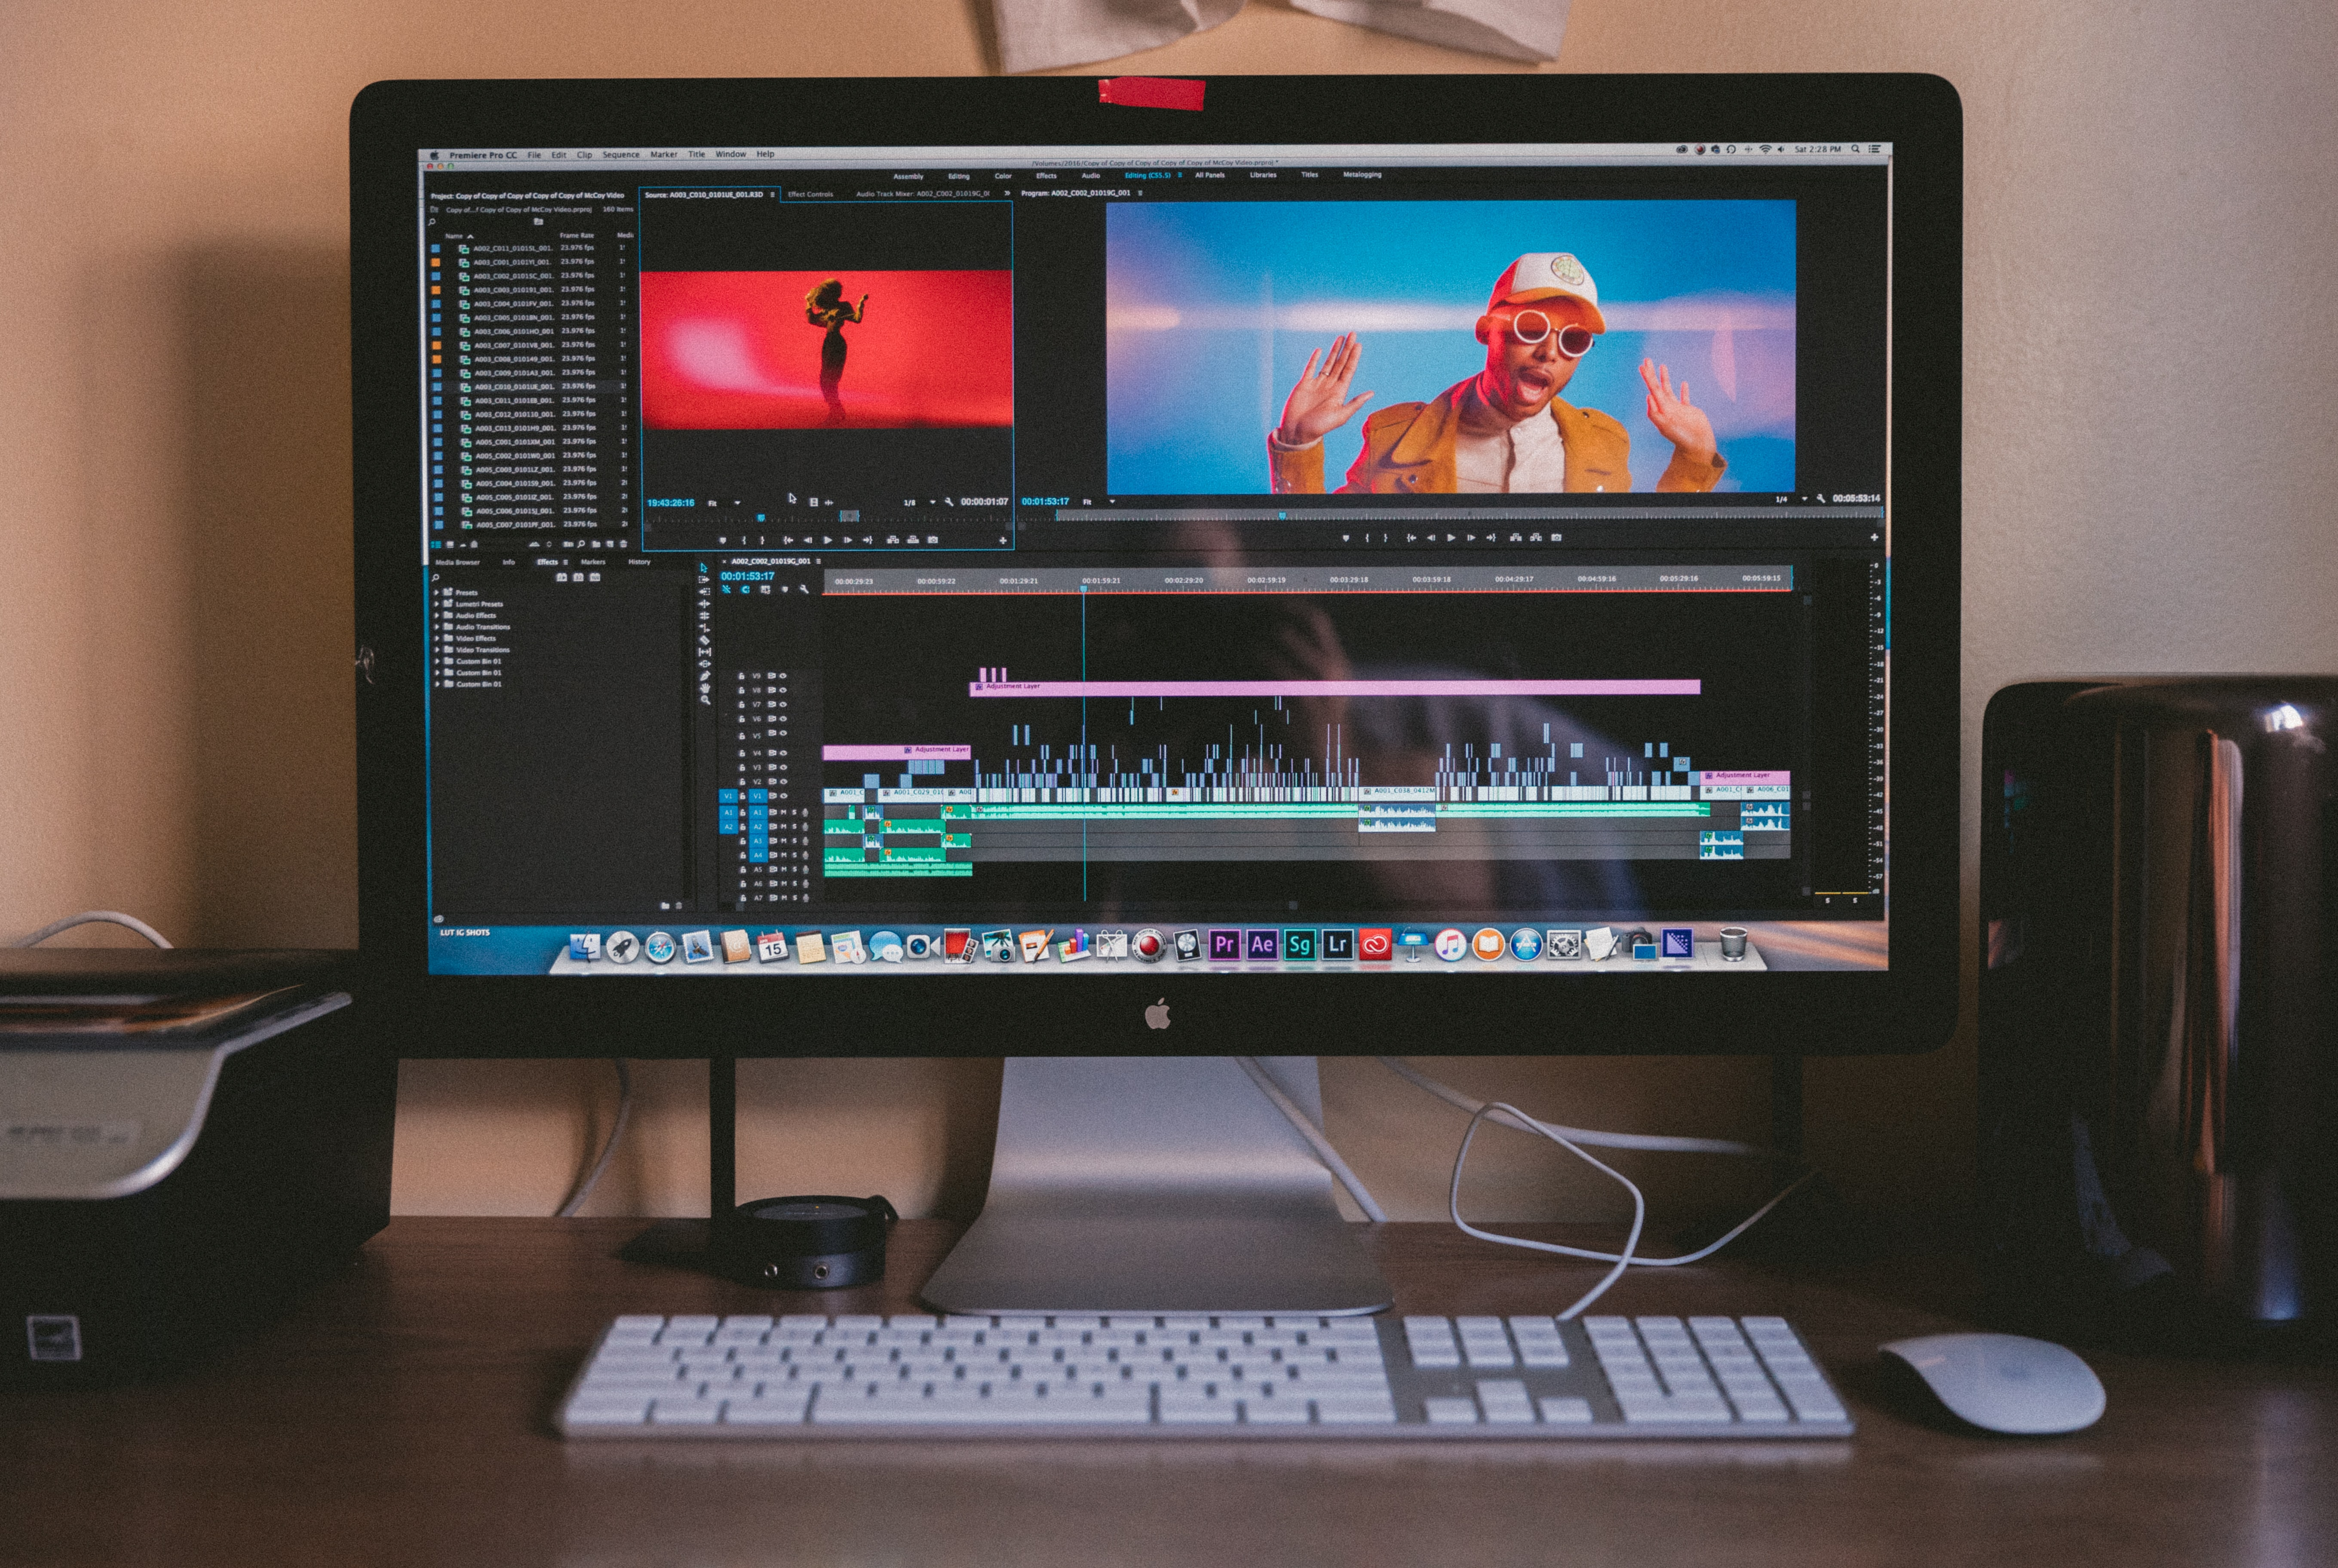 A video editing software.